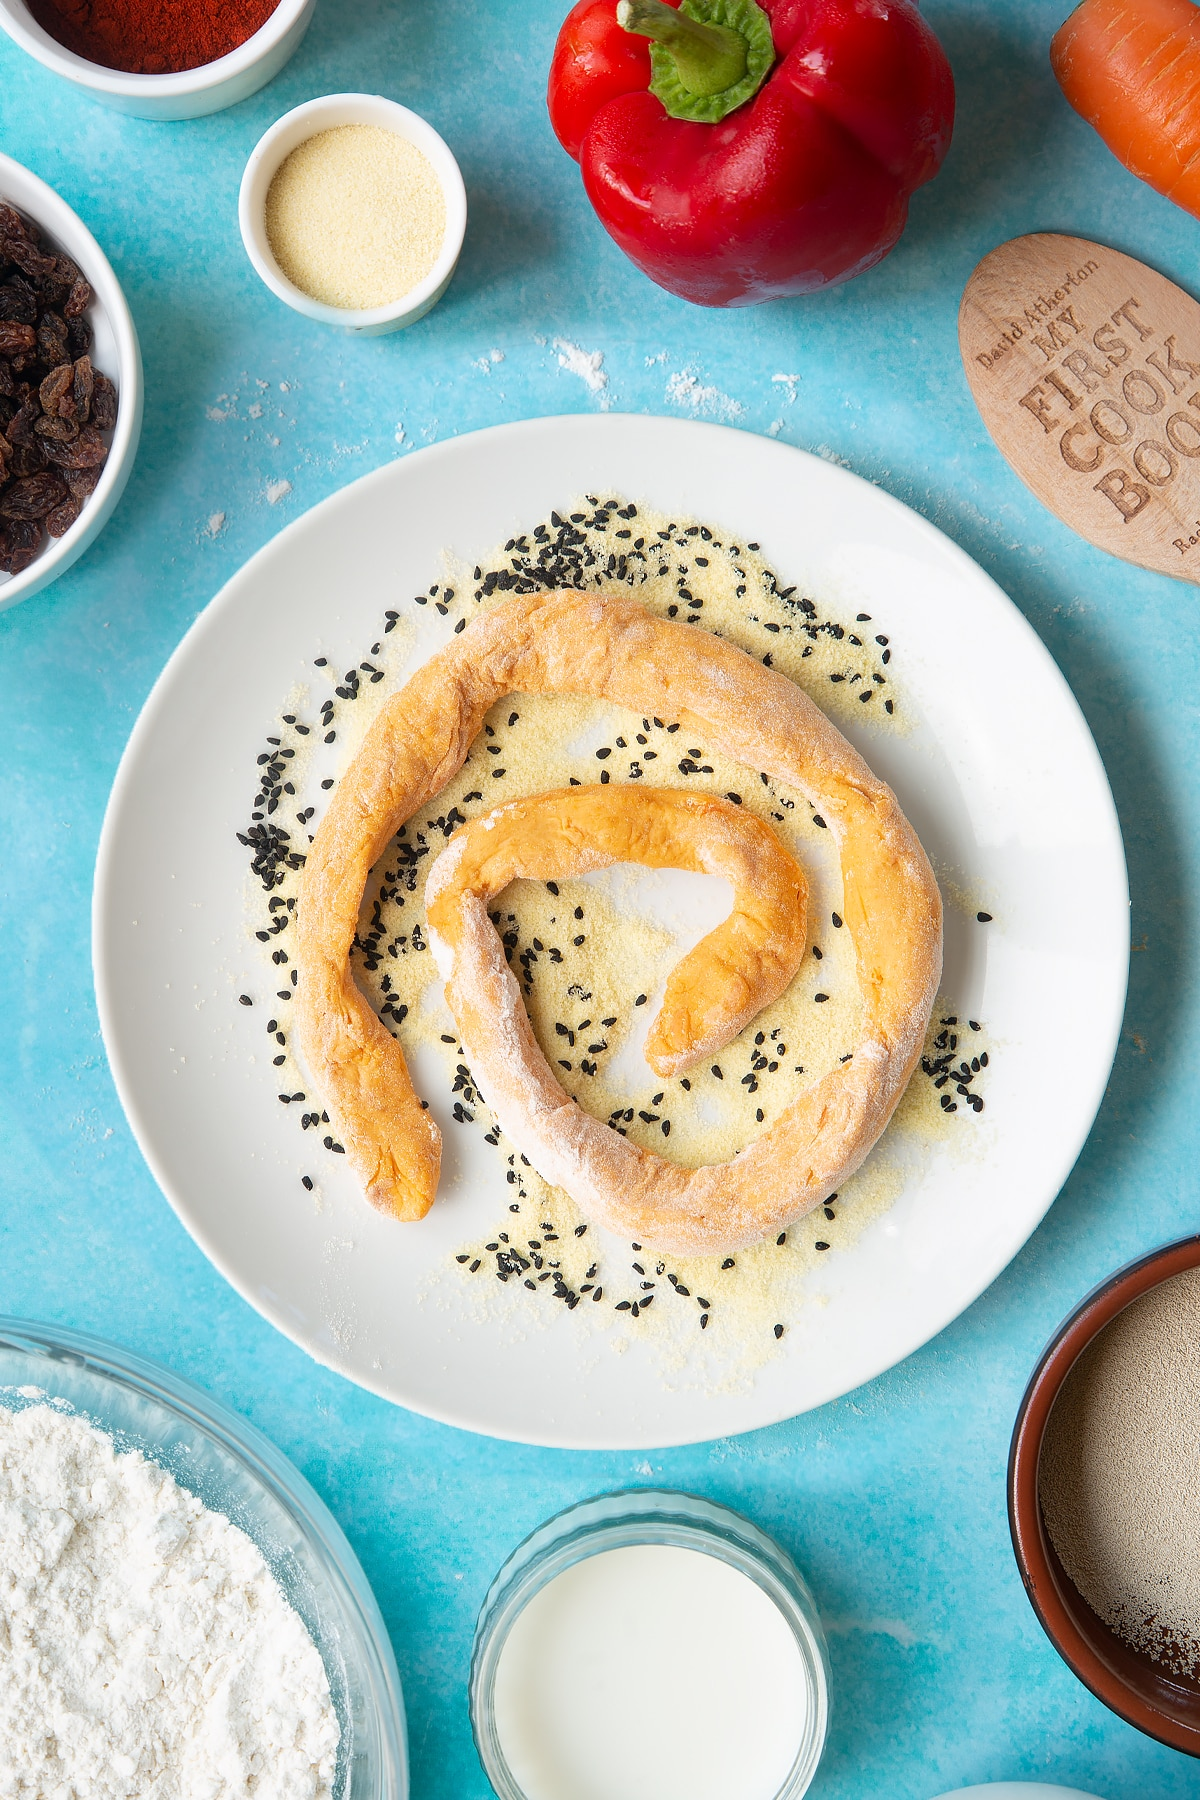 Paprika and carrot bread dough rolled into a long sausage on a plate with semolina and nigella seeds. Ingredients to make bread snakes surround the plate.